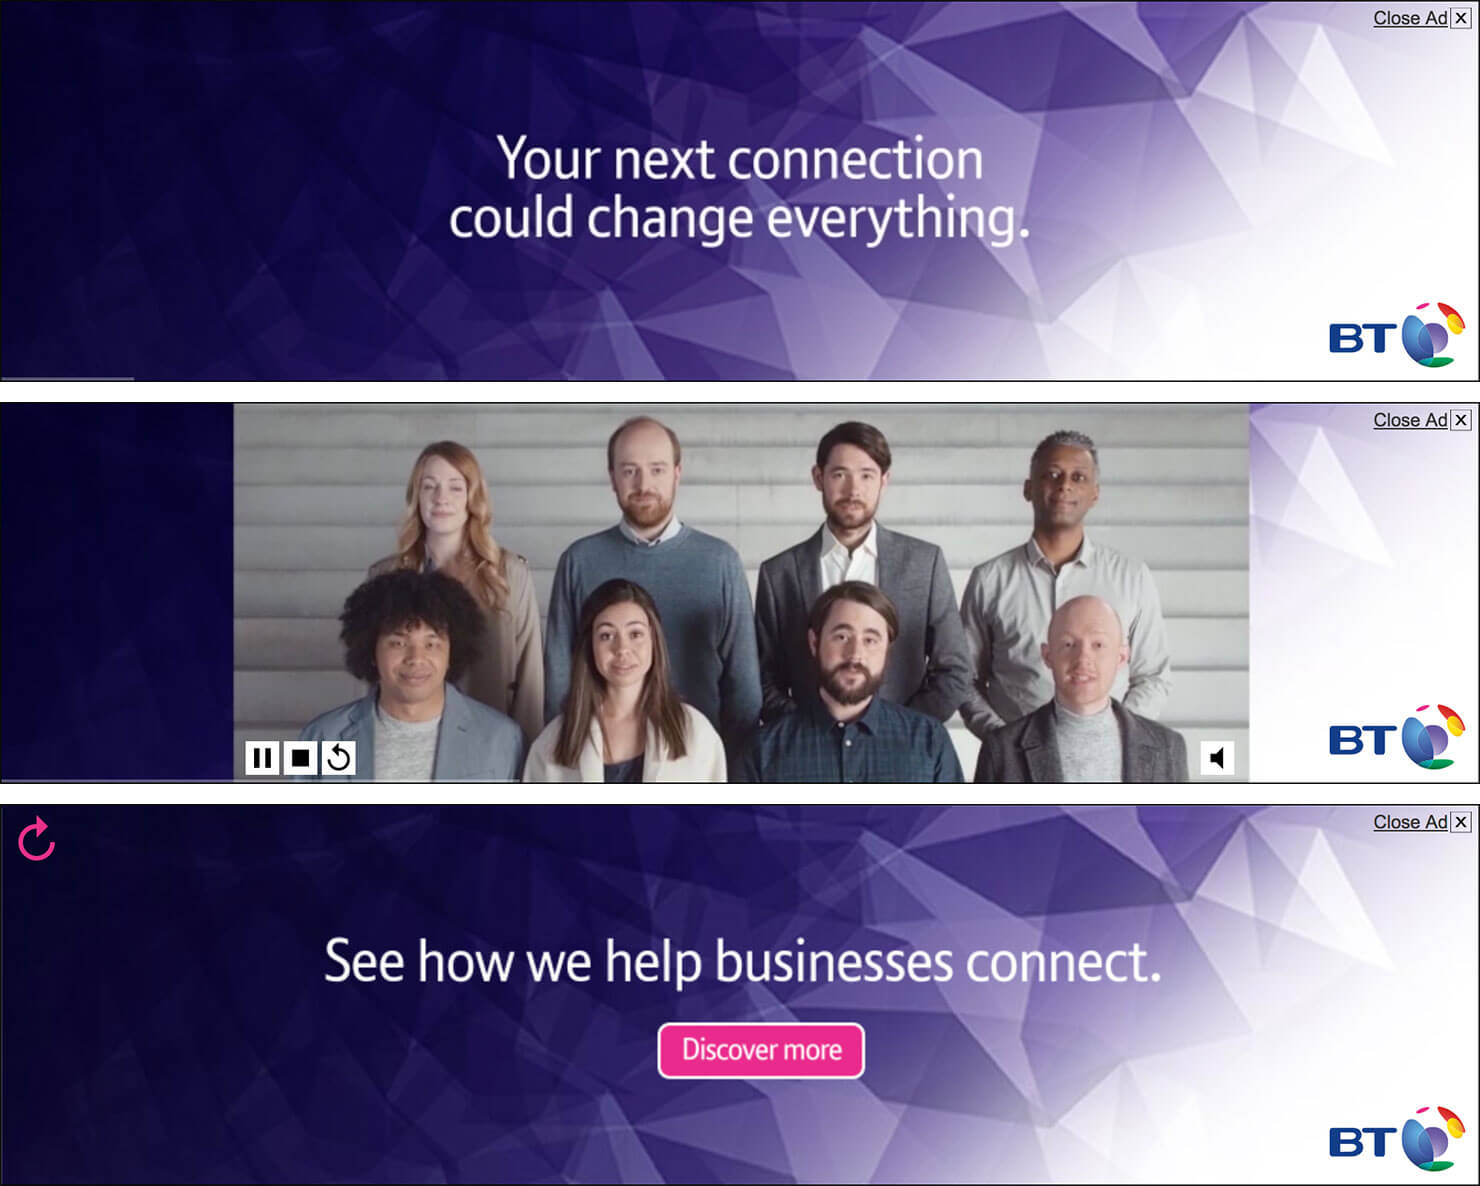 BT Business Business Connect HTML5 video banners storyboard